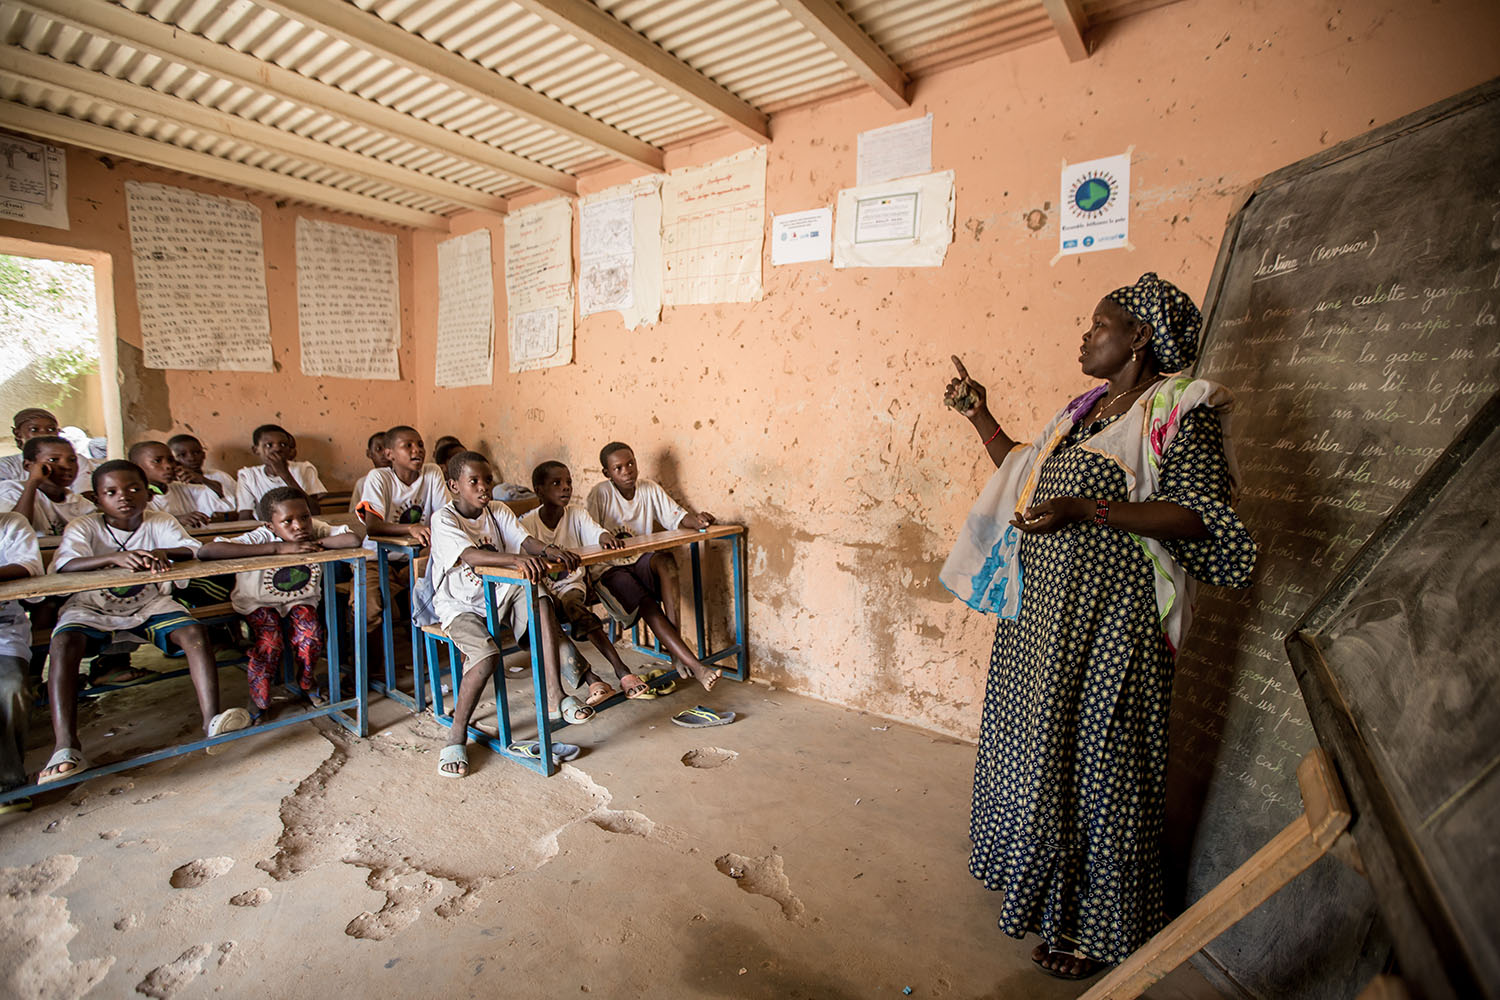 A teacher takes a maths class at the Accelerated Learning Center of Bourougoundye, Gao where ongoing conflicts in the northern regions of Mali continue to have devastating effects education. UNICEF supports the re-opening of schools and alternative educat